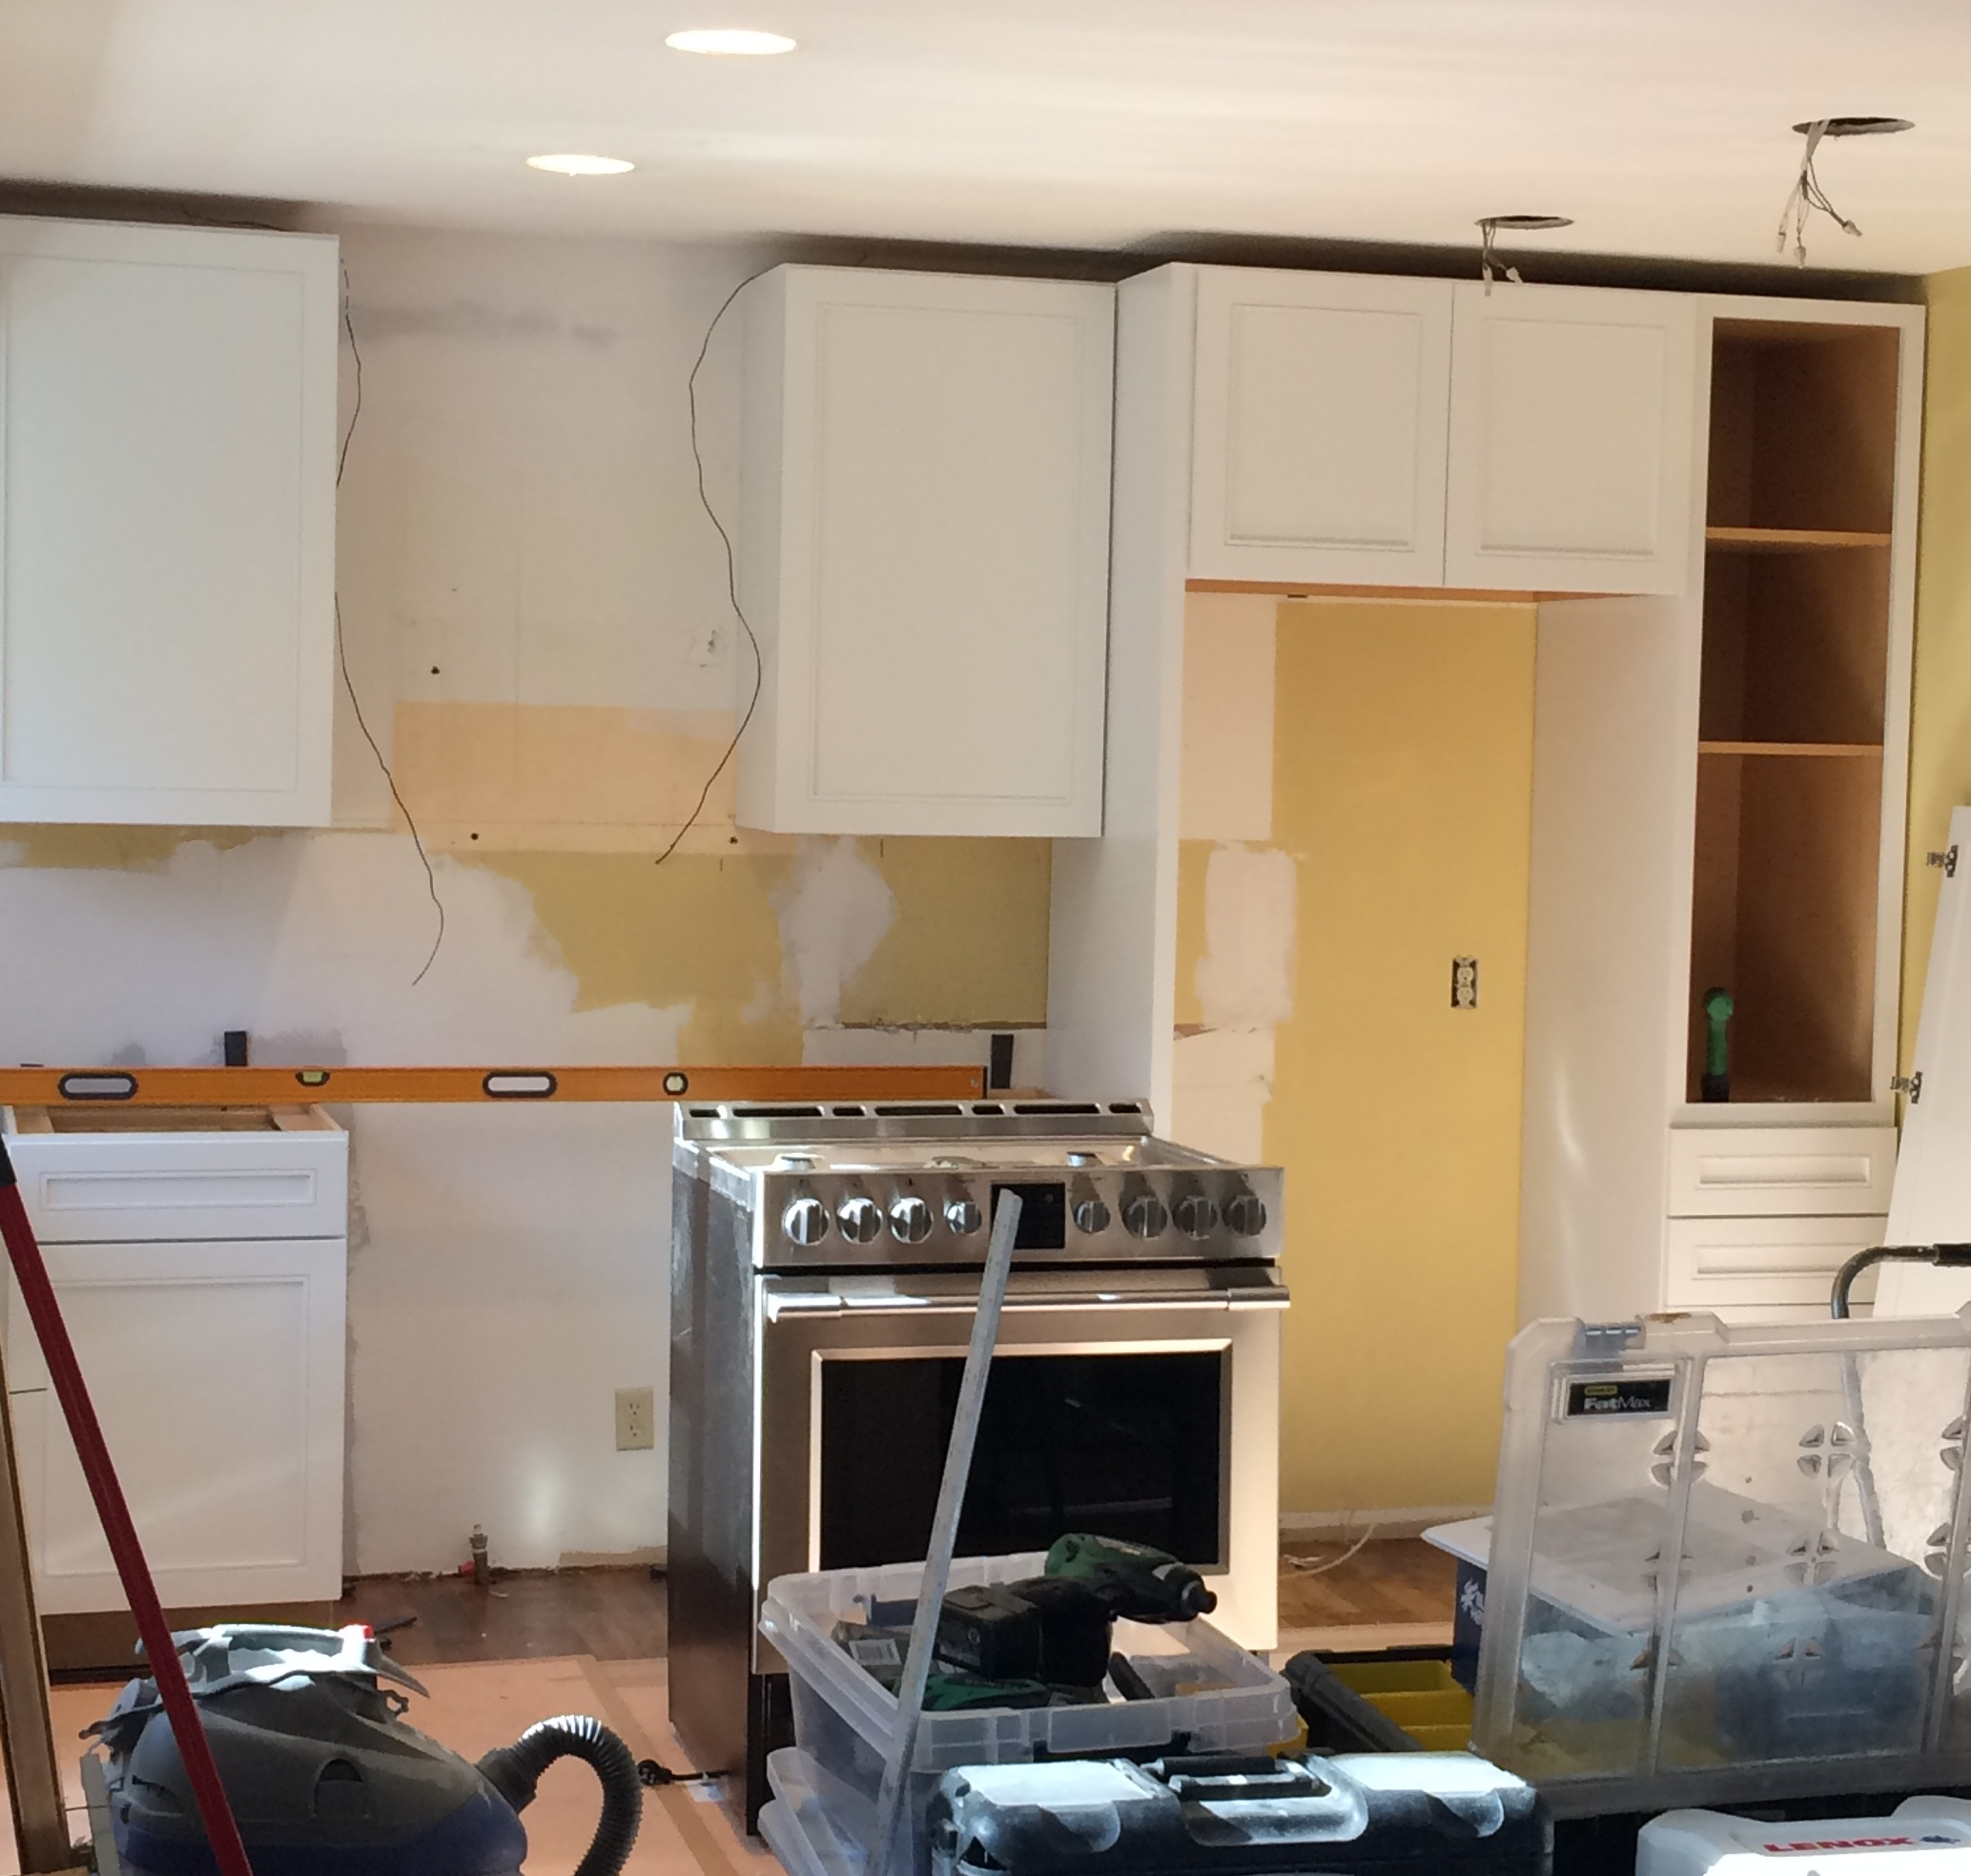 Kitchen Renovation: The Cabinets